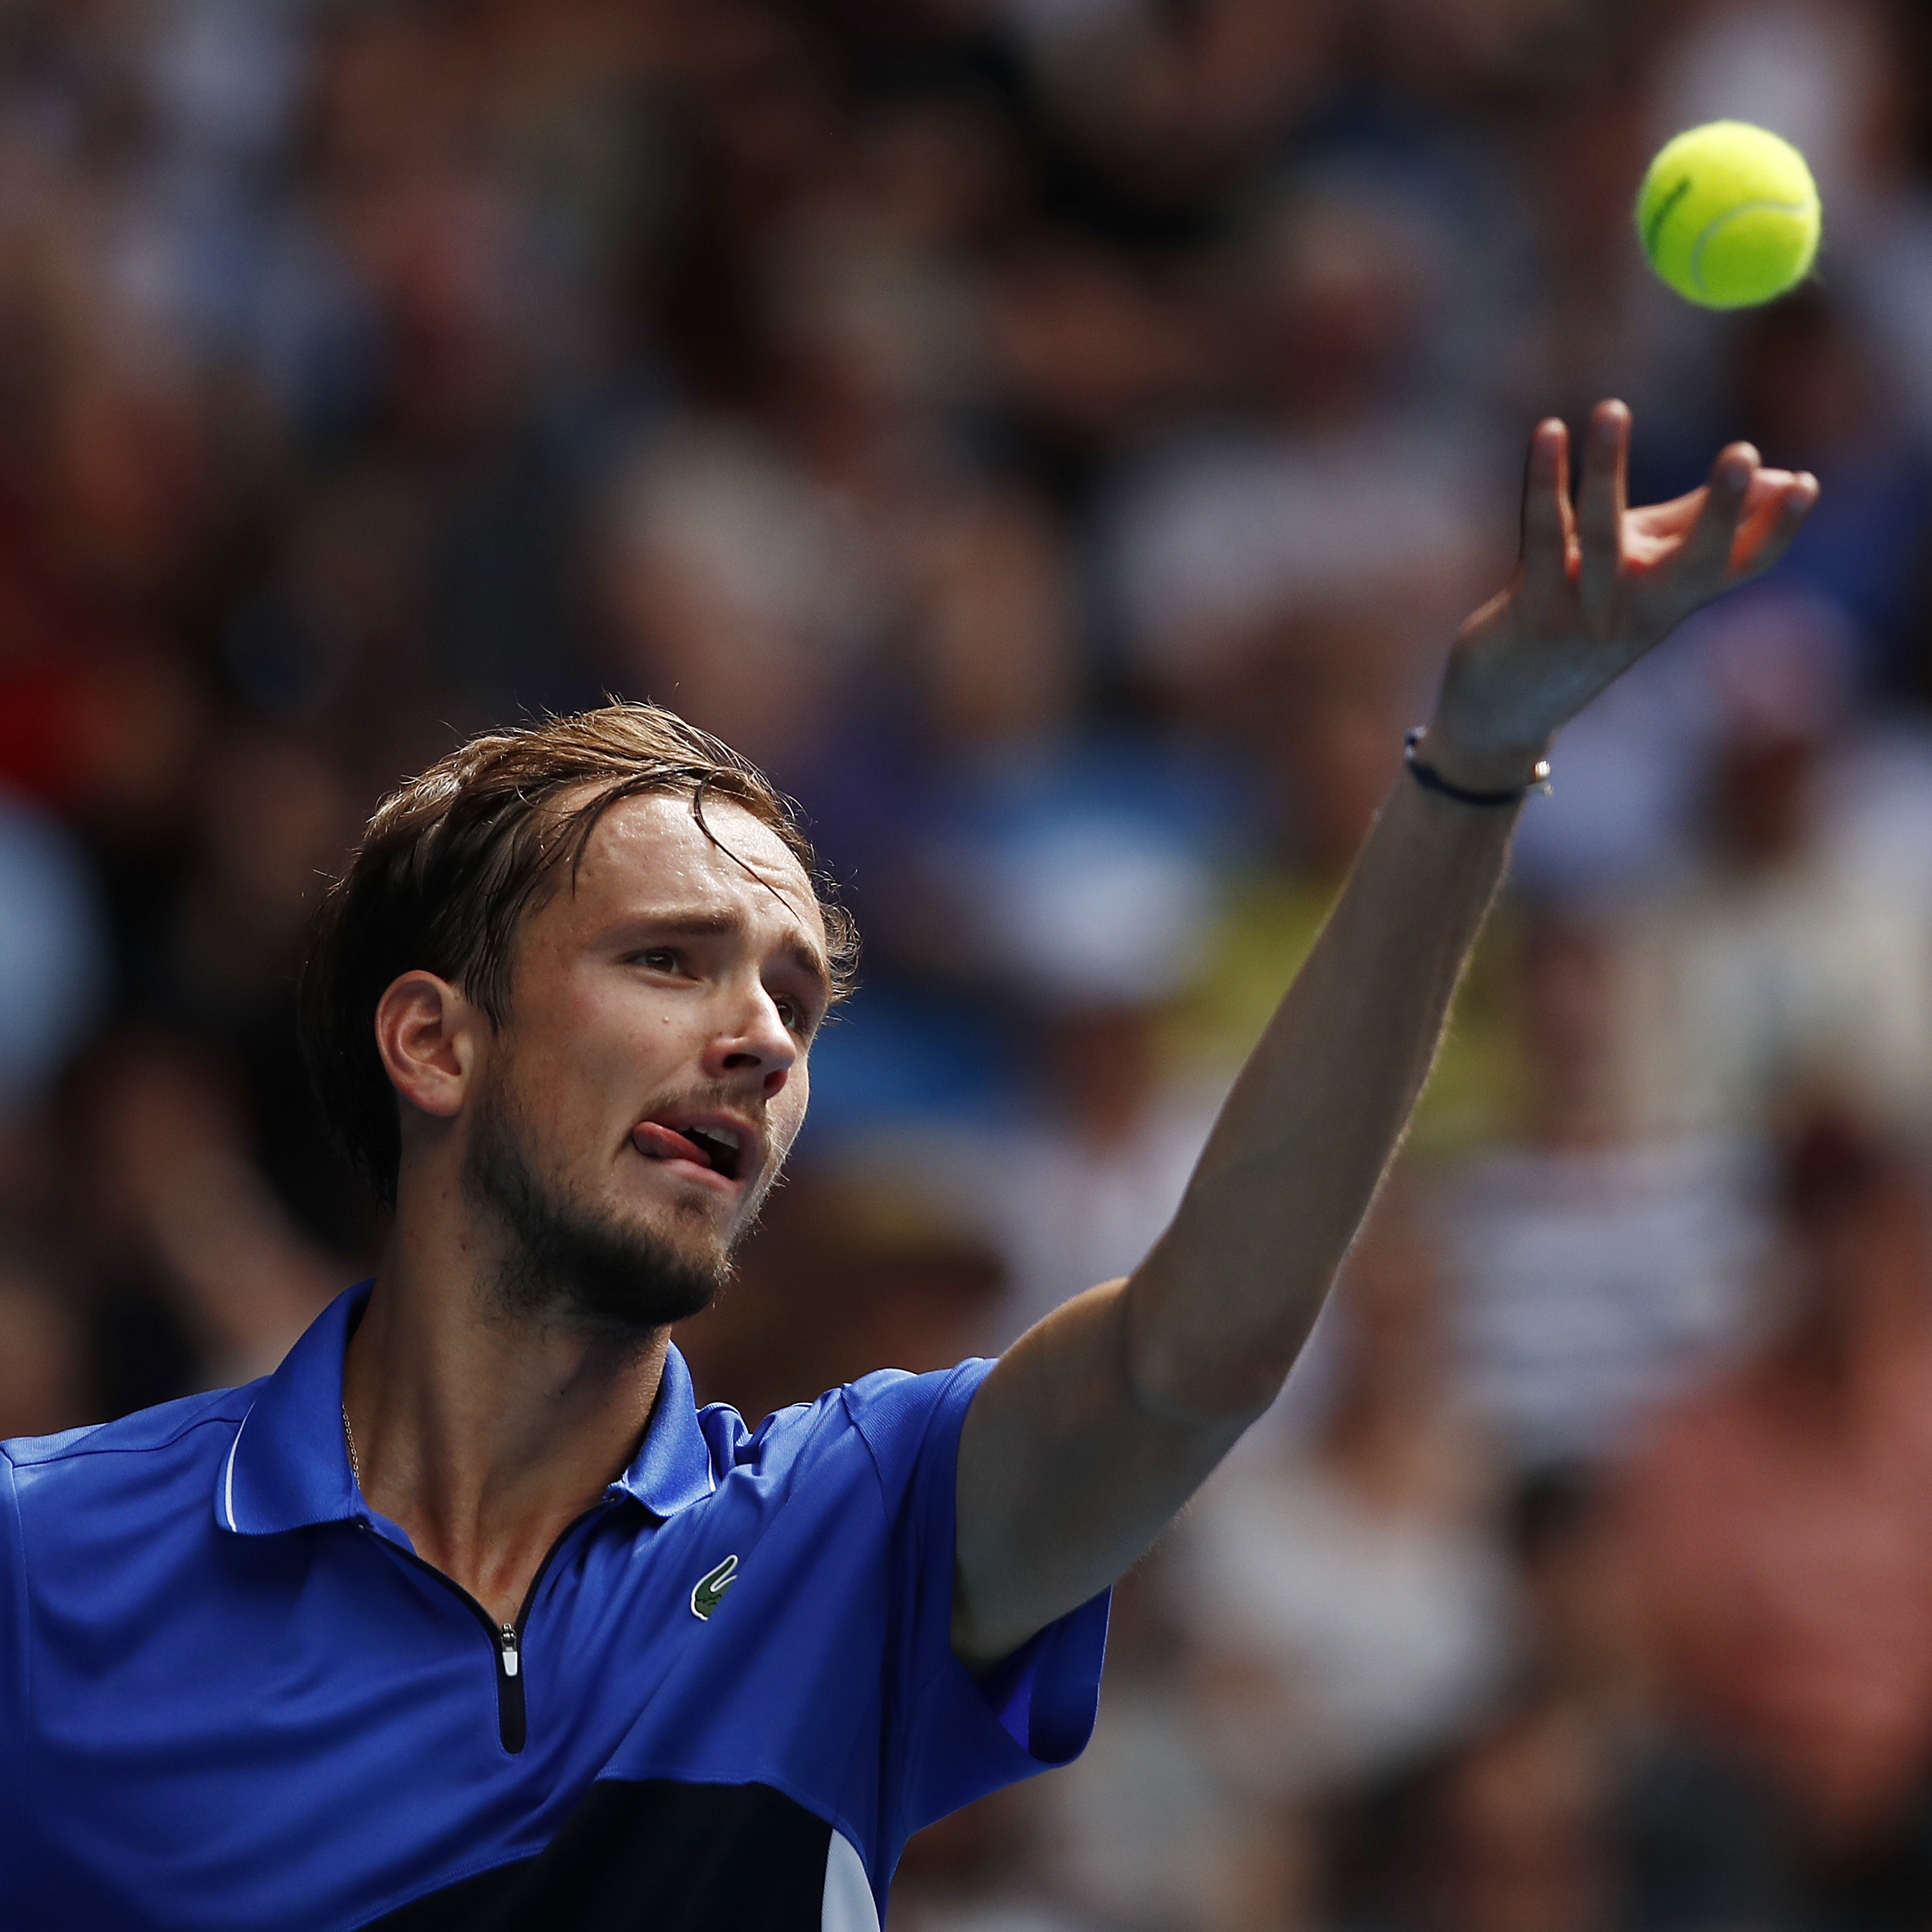 What does medvedev mean in russian? Tennis Fans Daniil Medvedev Is Your New God This Is The Loop Golfdigest Com